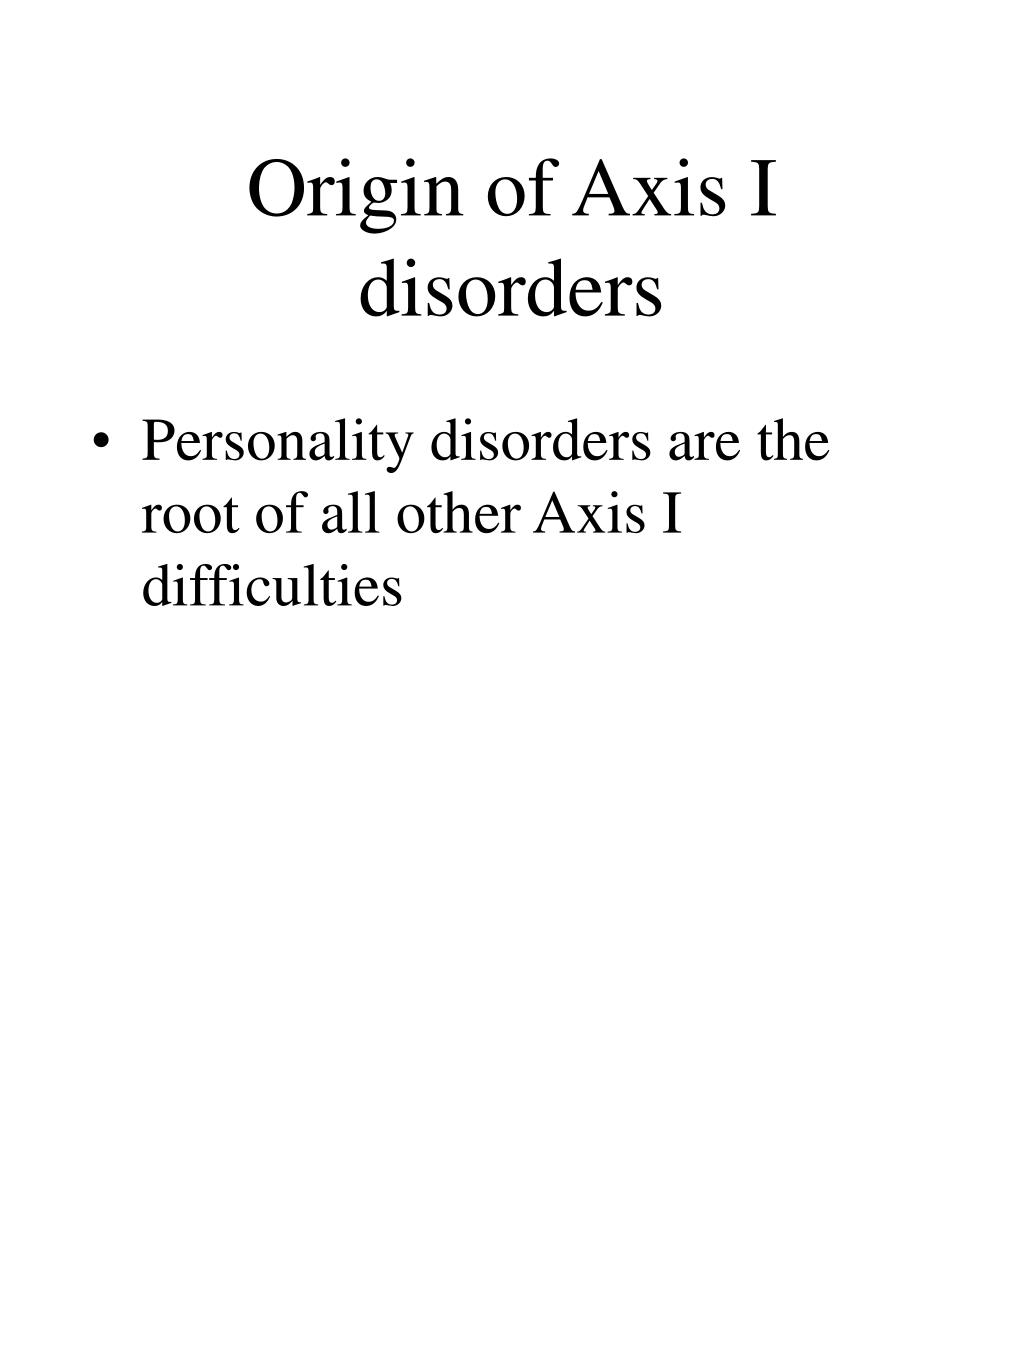 Origin of Axis I disorders